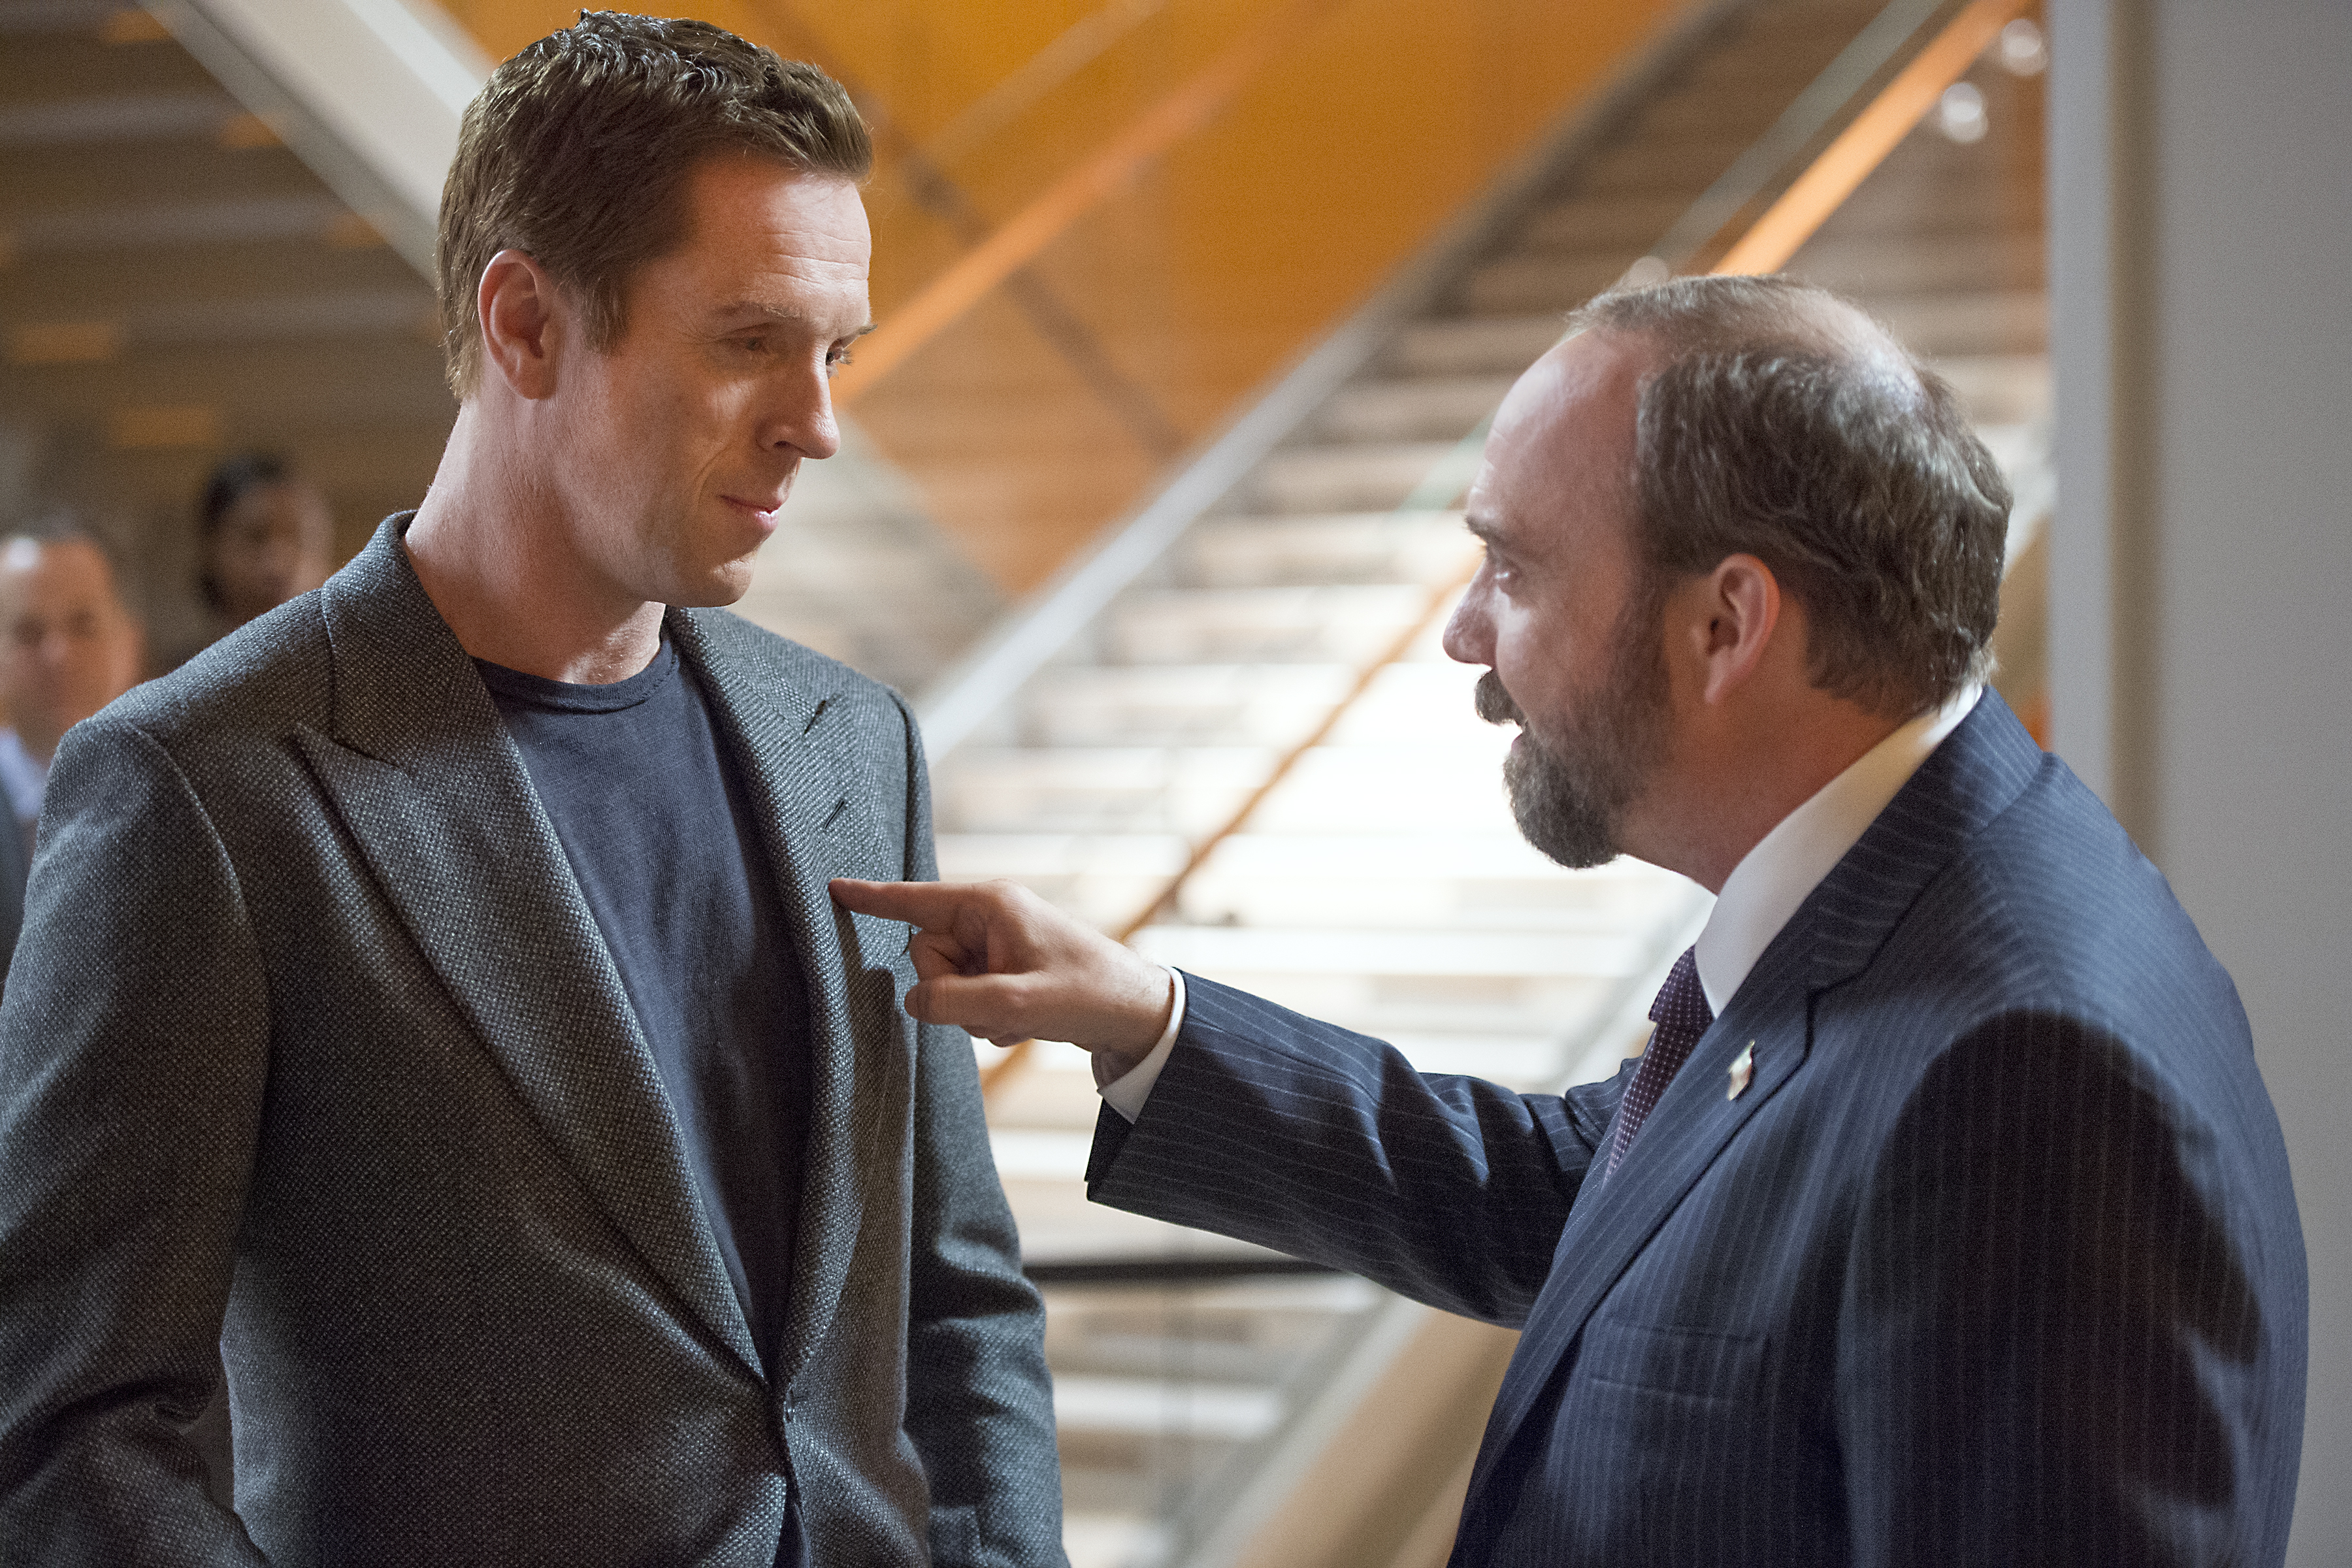 Paul Giamatti and Damian Lewis star in upcoming series Billions. (Credit: Showtime)